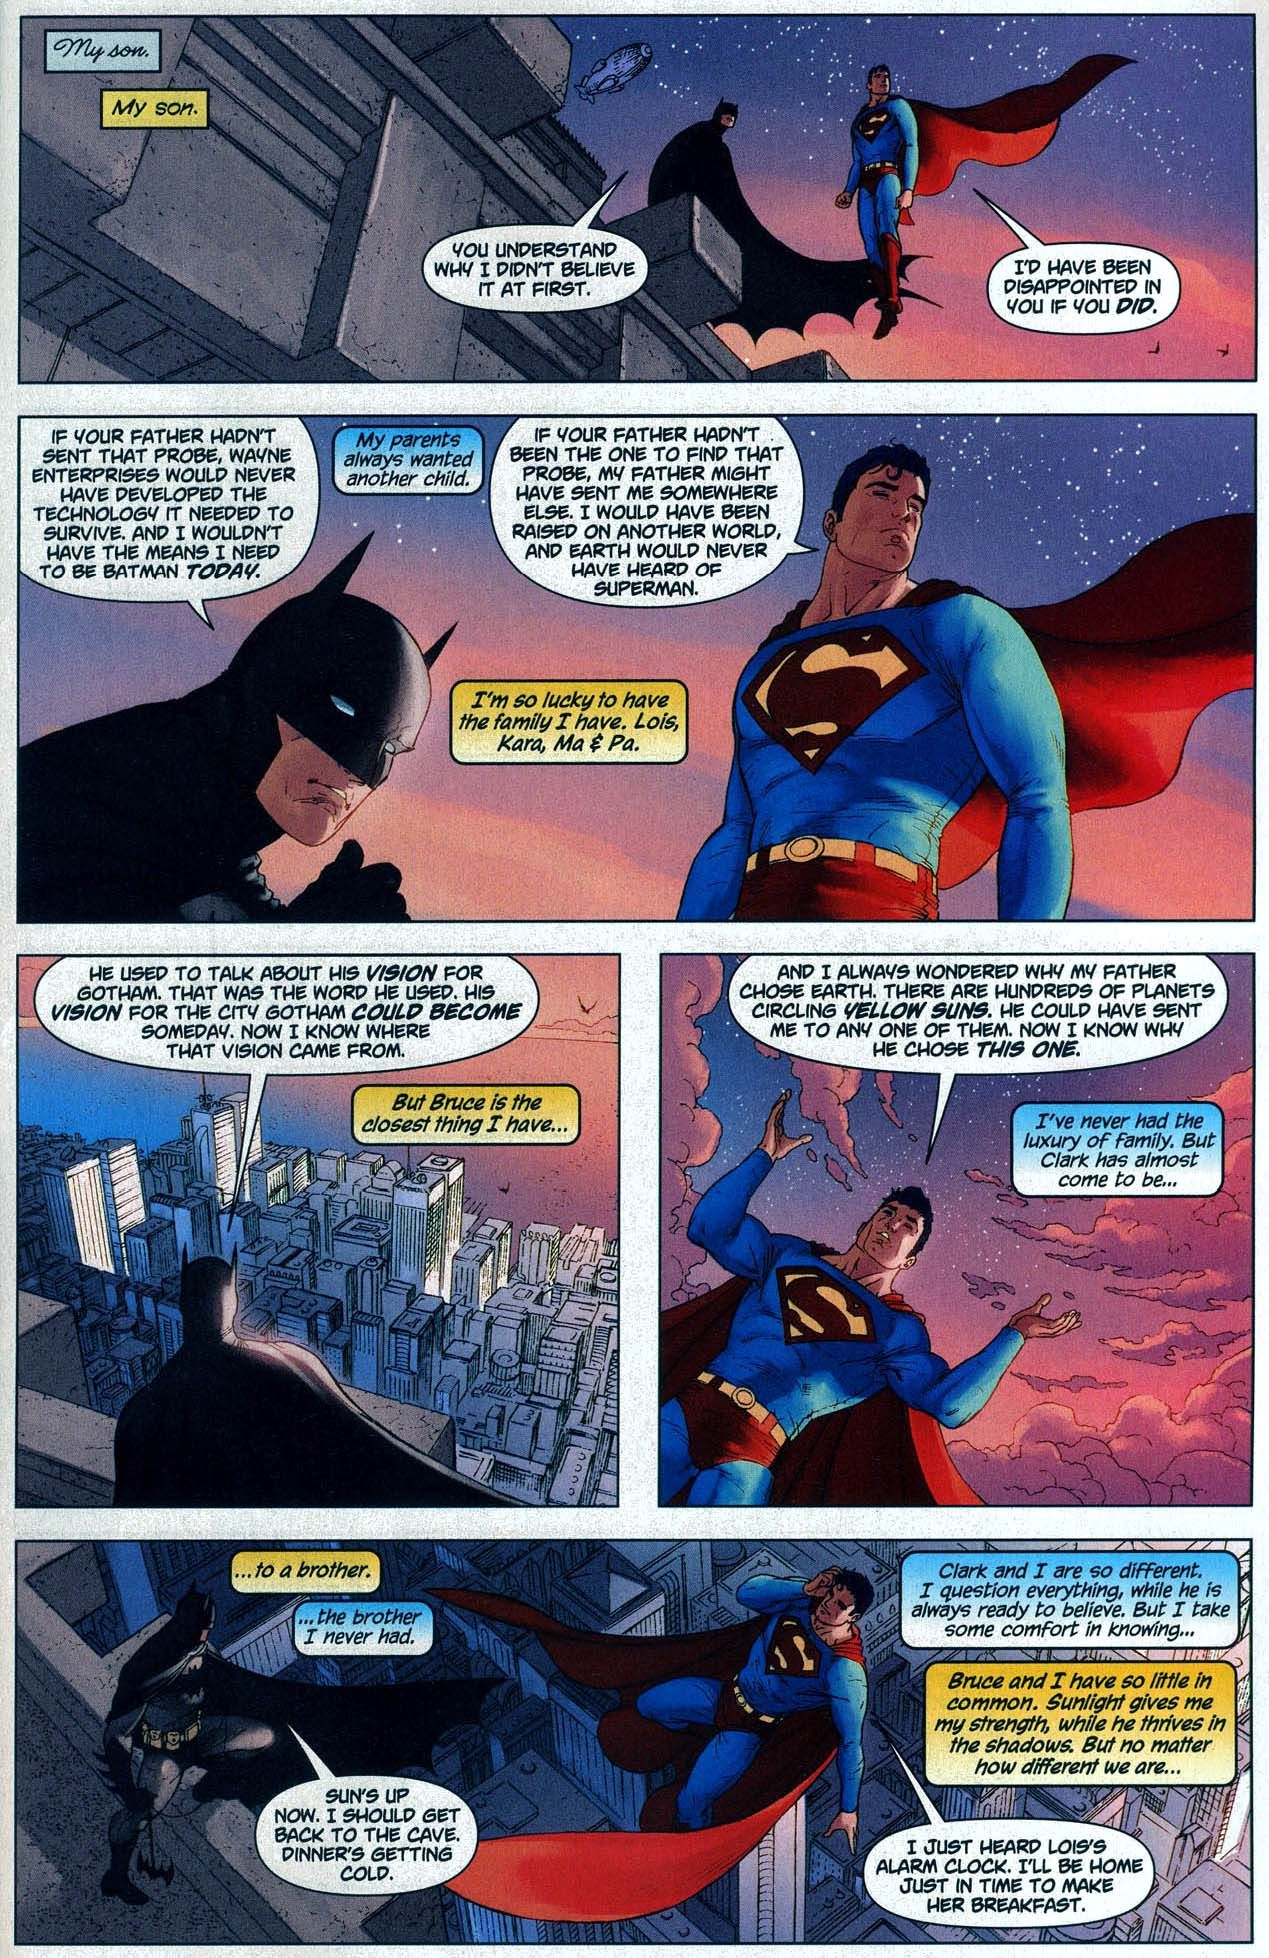 superman and batman about being brothers